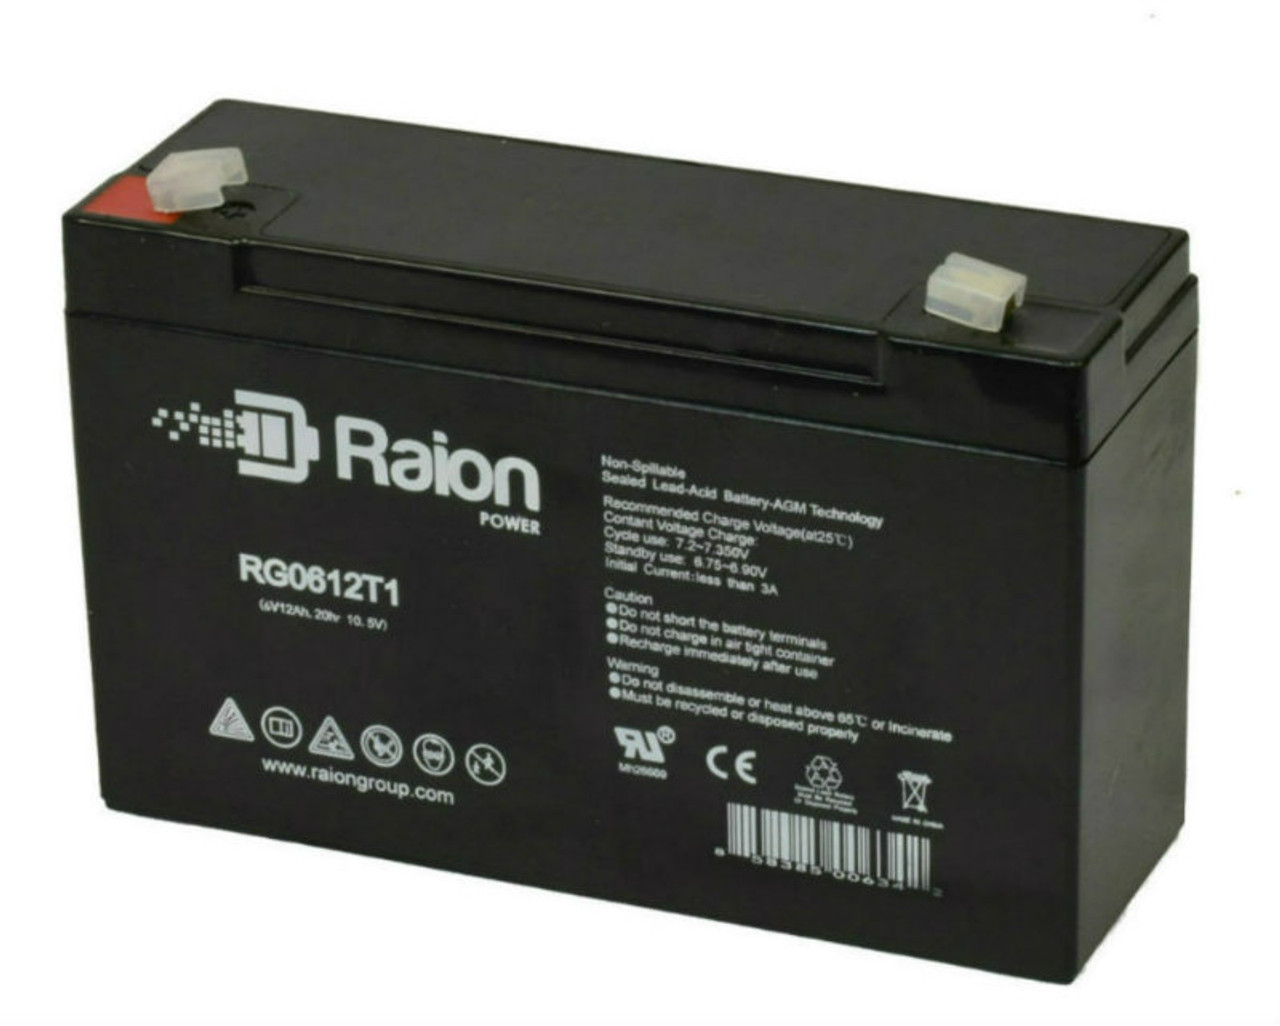 Raion Power RG06120T1 Replacement Battery Pack for Sonnenschein 95523 emergency light